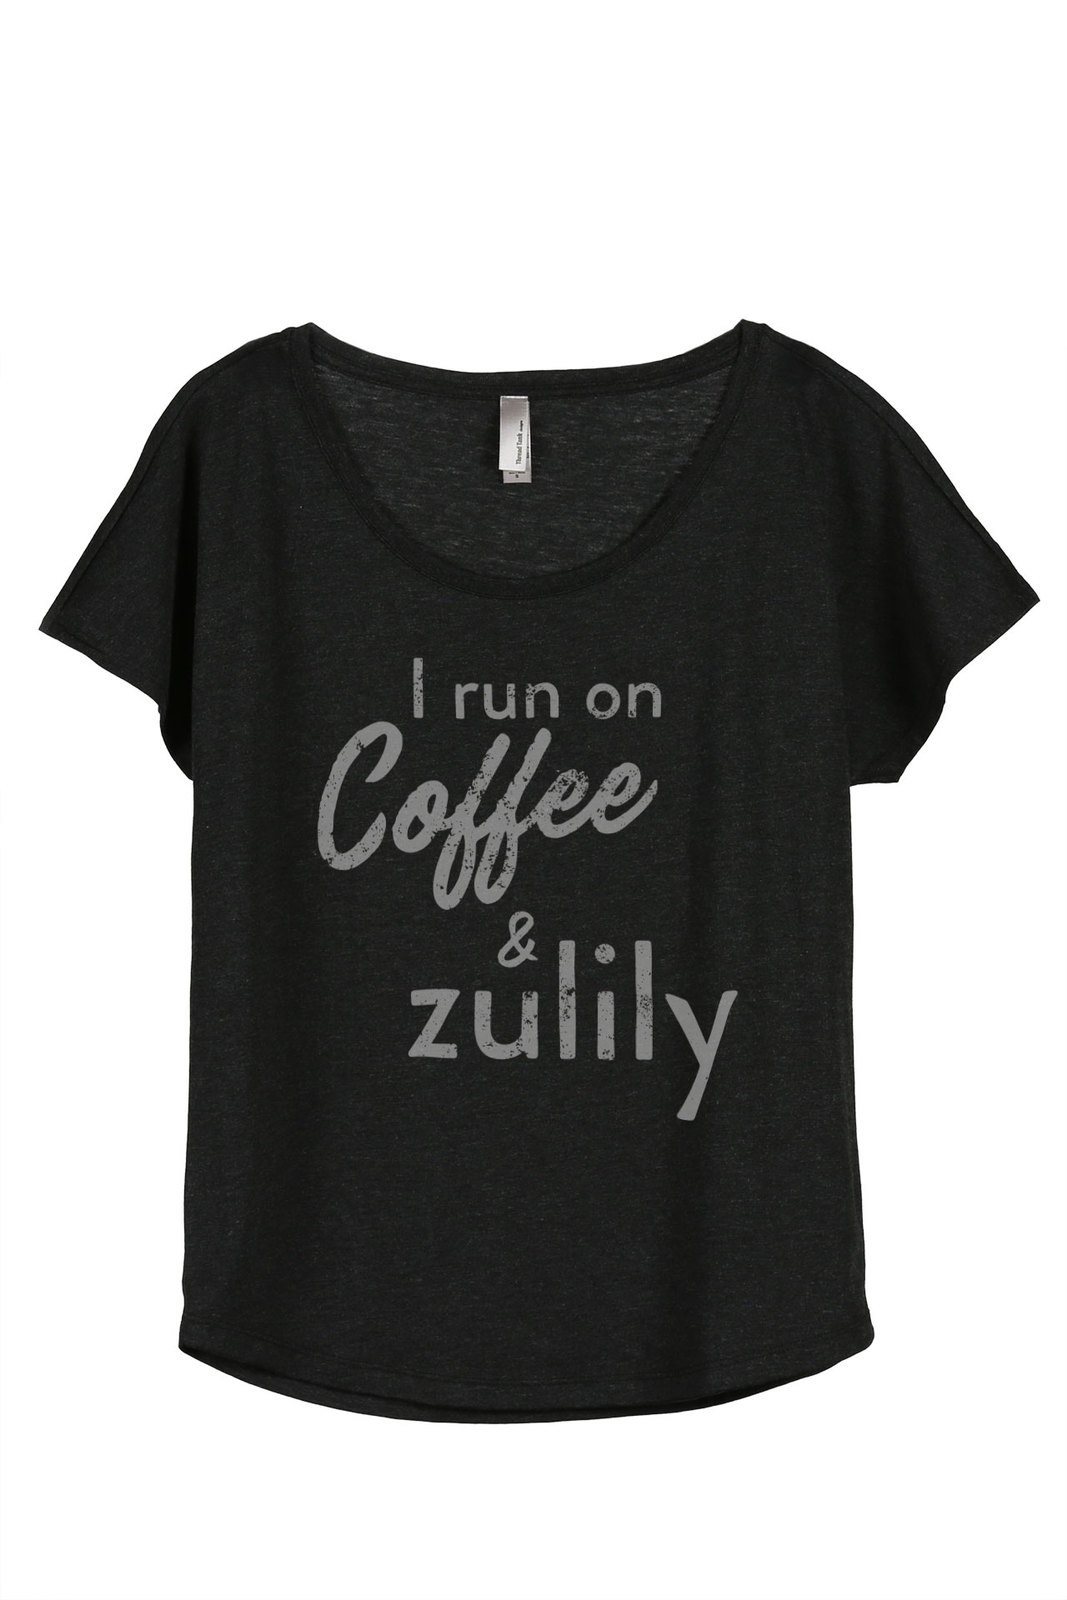 Thread Tank I Run On Coffee And Zulily Women's Slouchy Dolman T-Shirt Tee Heathe